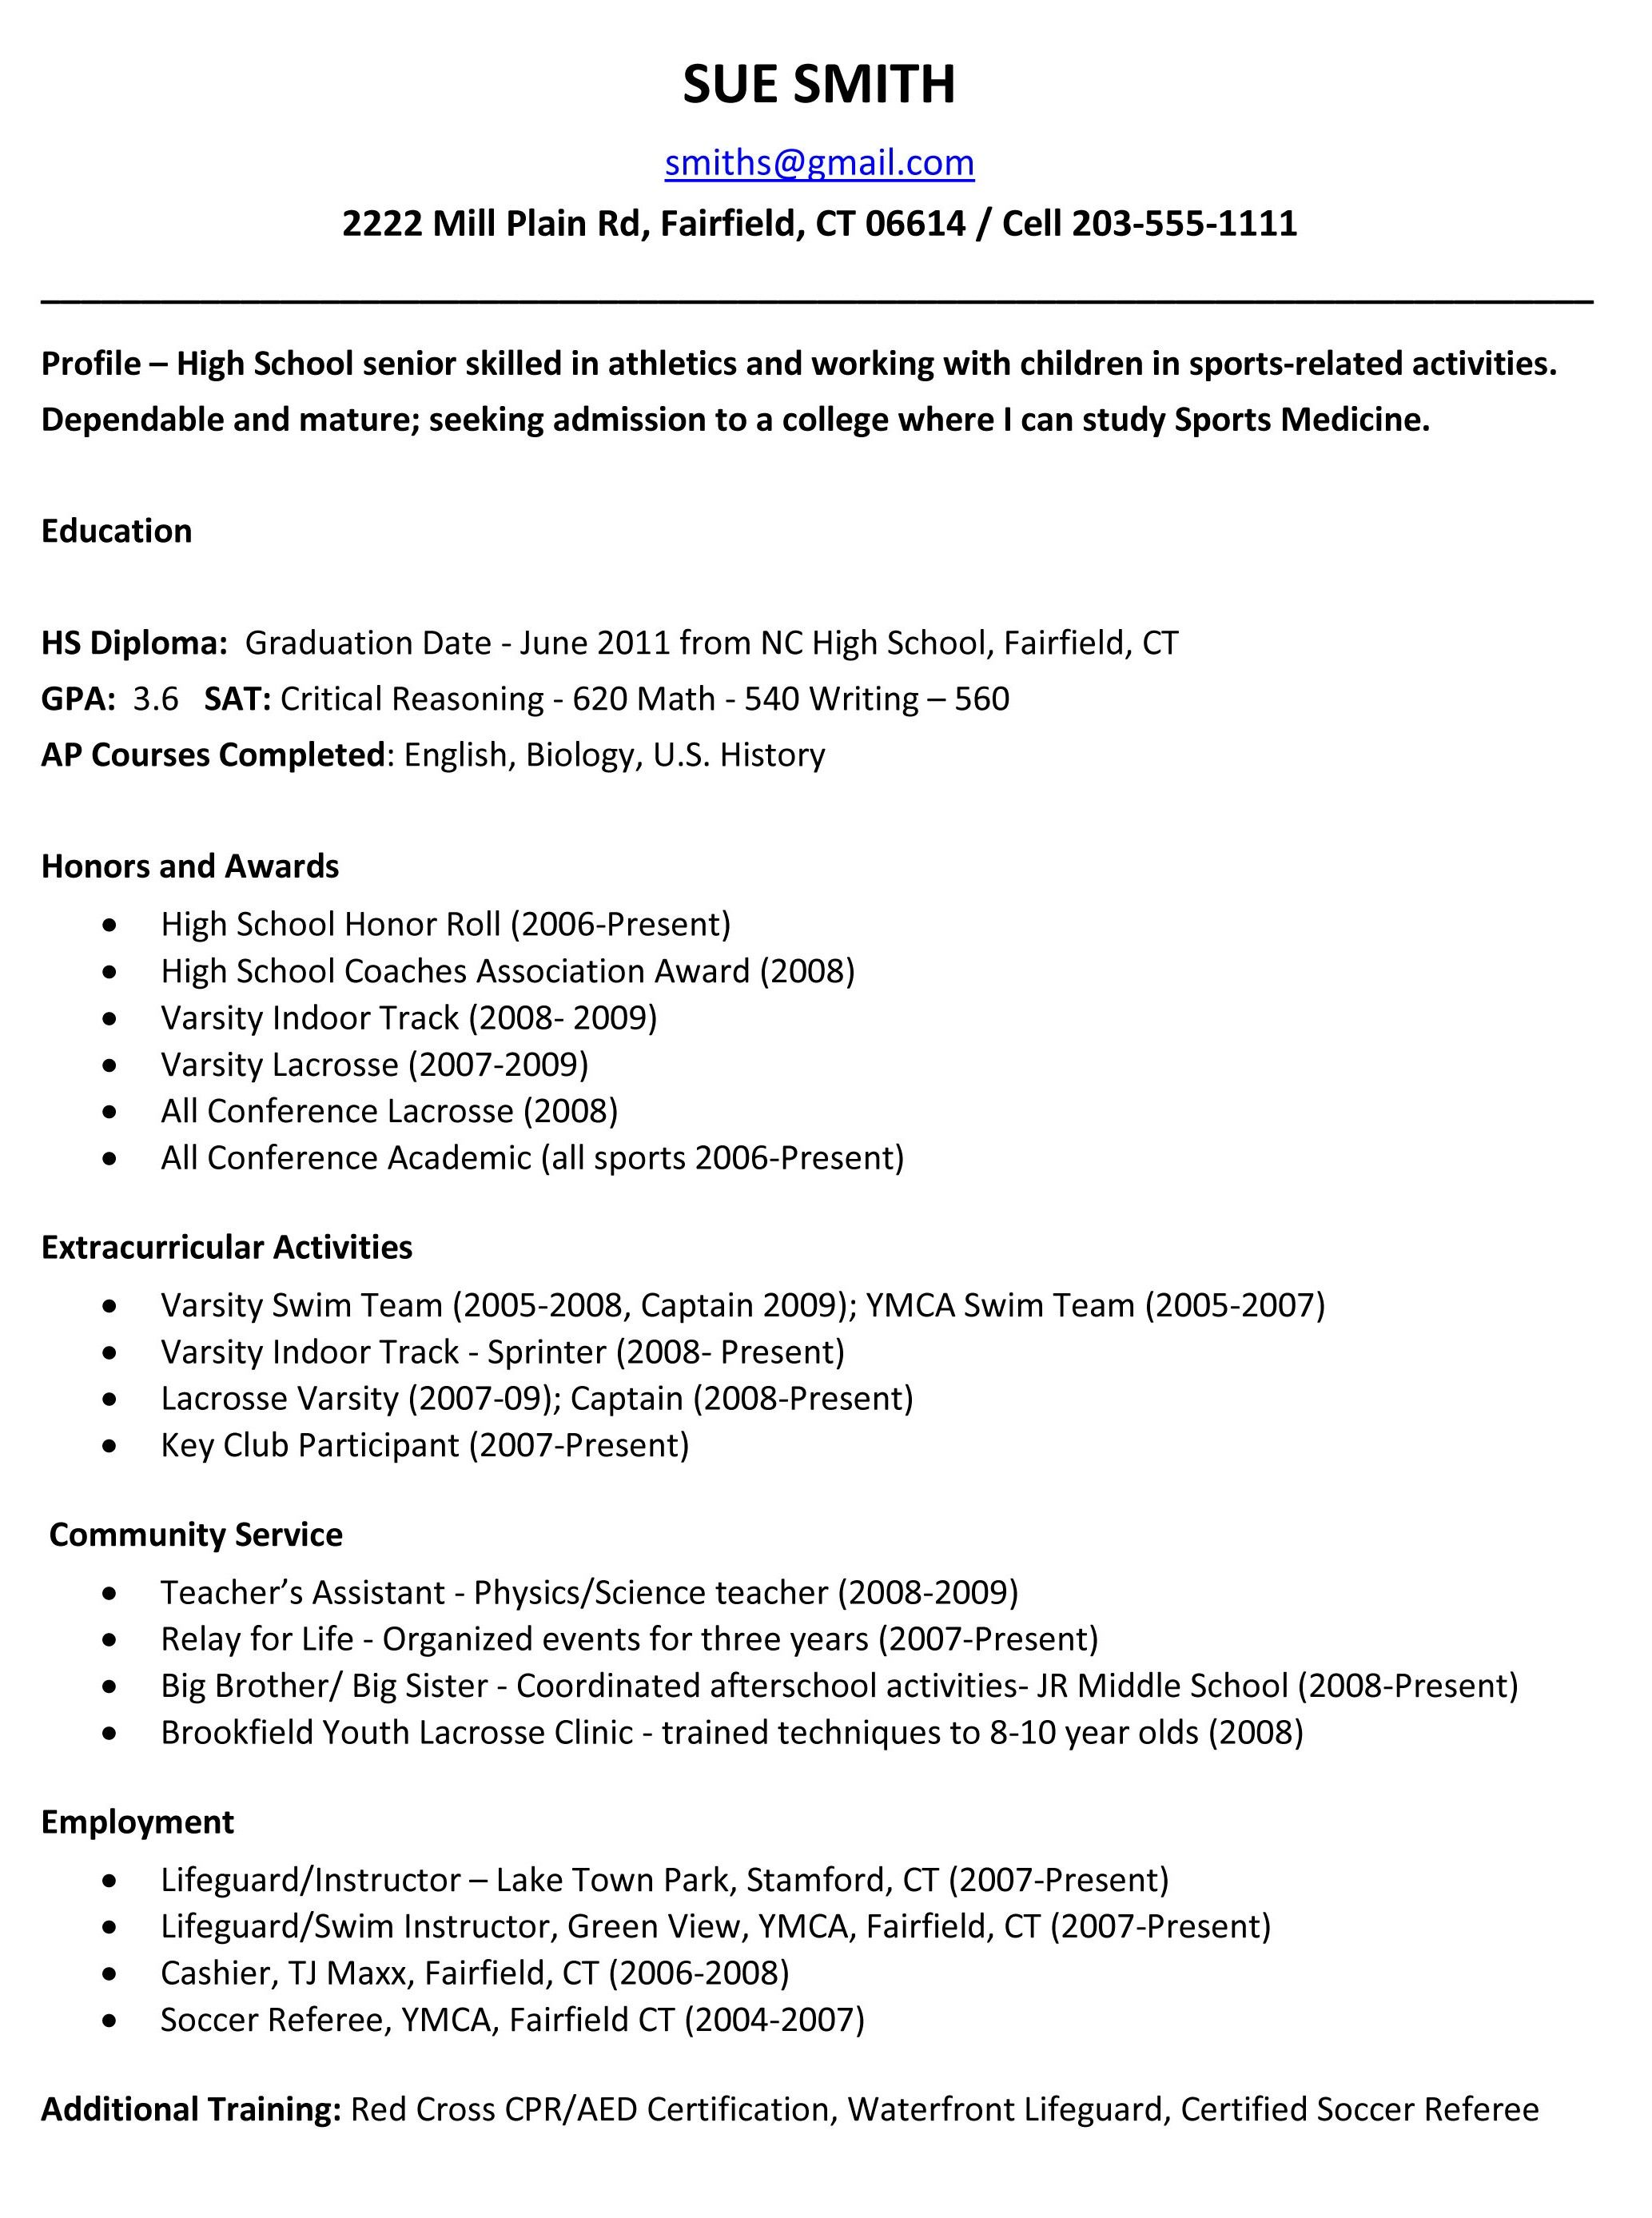 Examples Of High School Resumes - Resume Sample